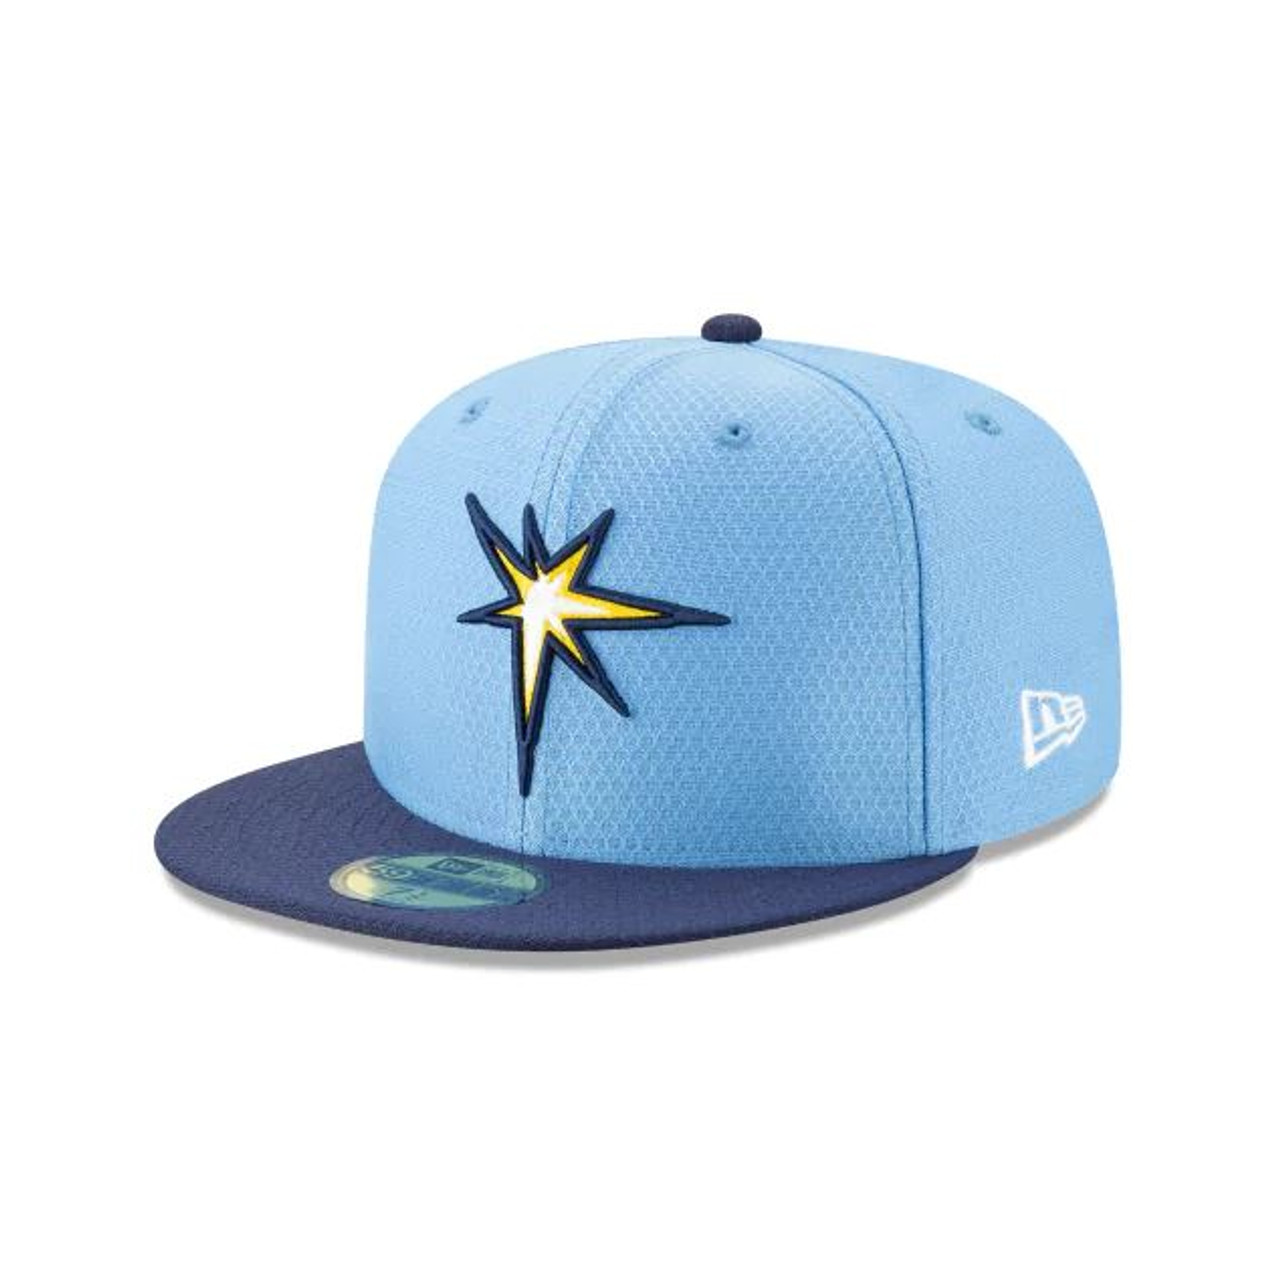 low priced eac98 99517 Men s Tampa Bay Rays New Era 59FIFTY 2019 BP Fitted Hat. New Era